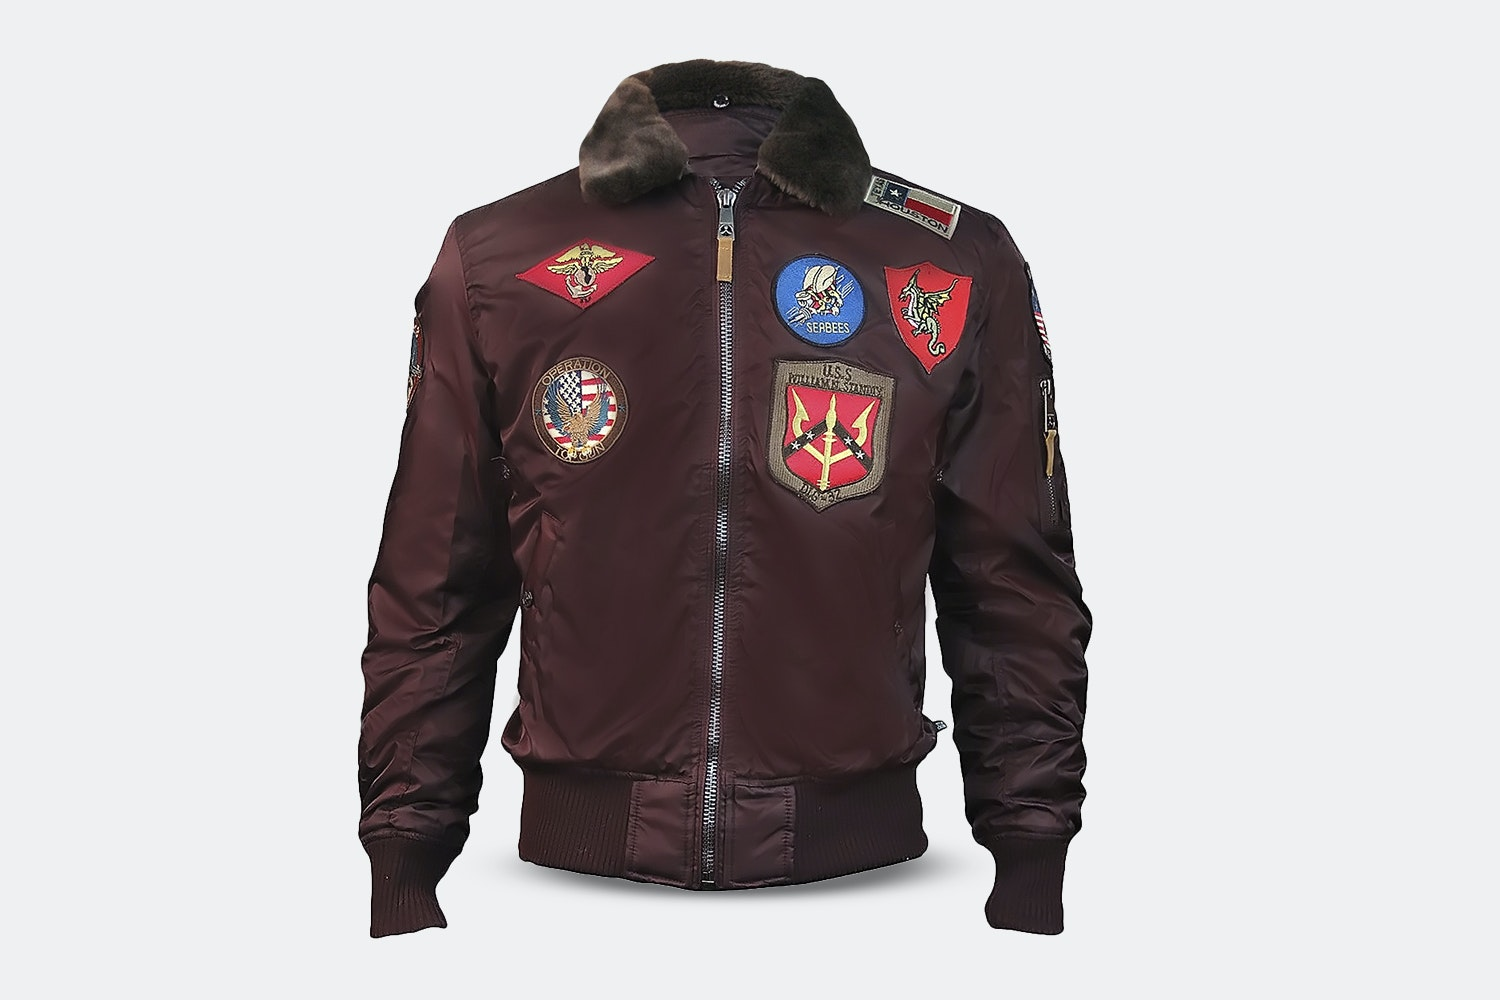 B-15 Flight Bomber Jacket with Patches  - Burgundy - S (+$15)